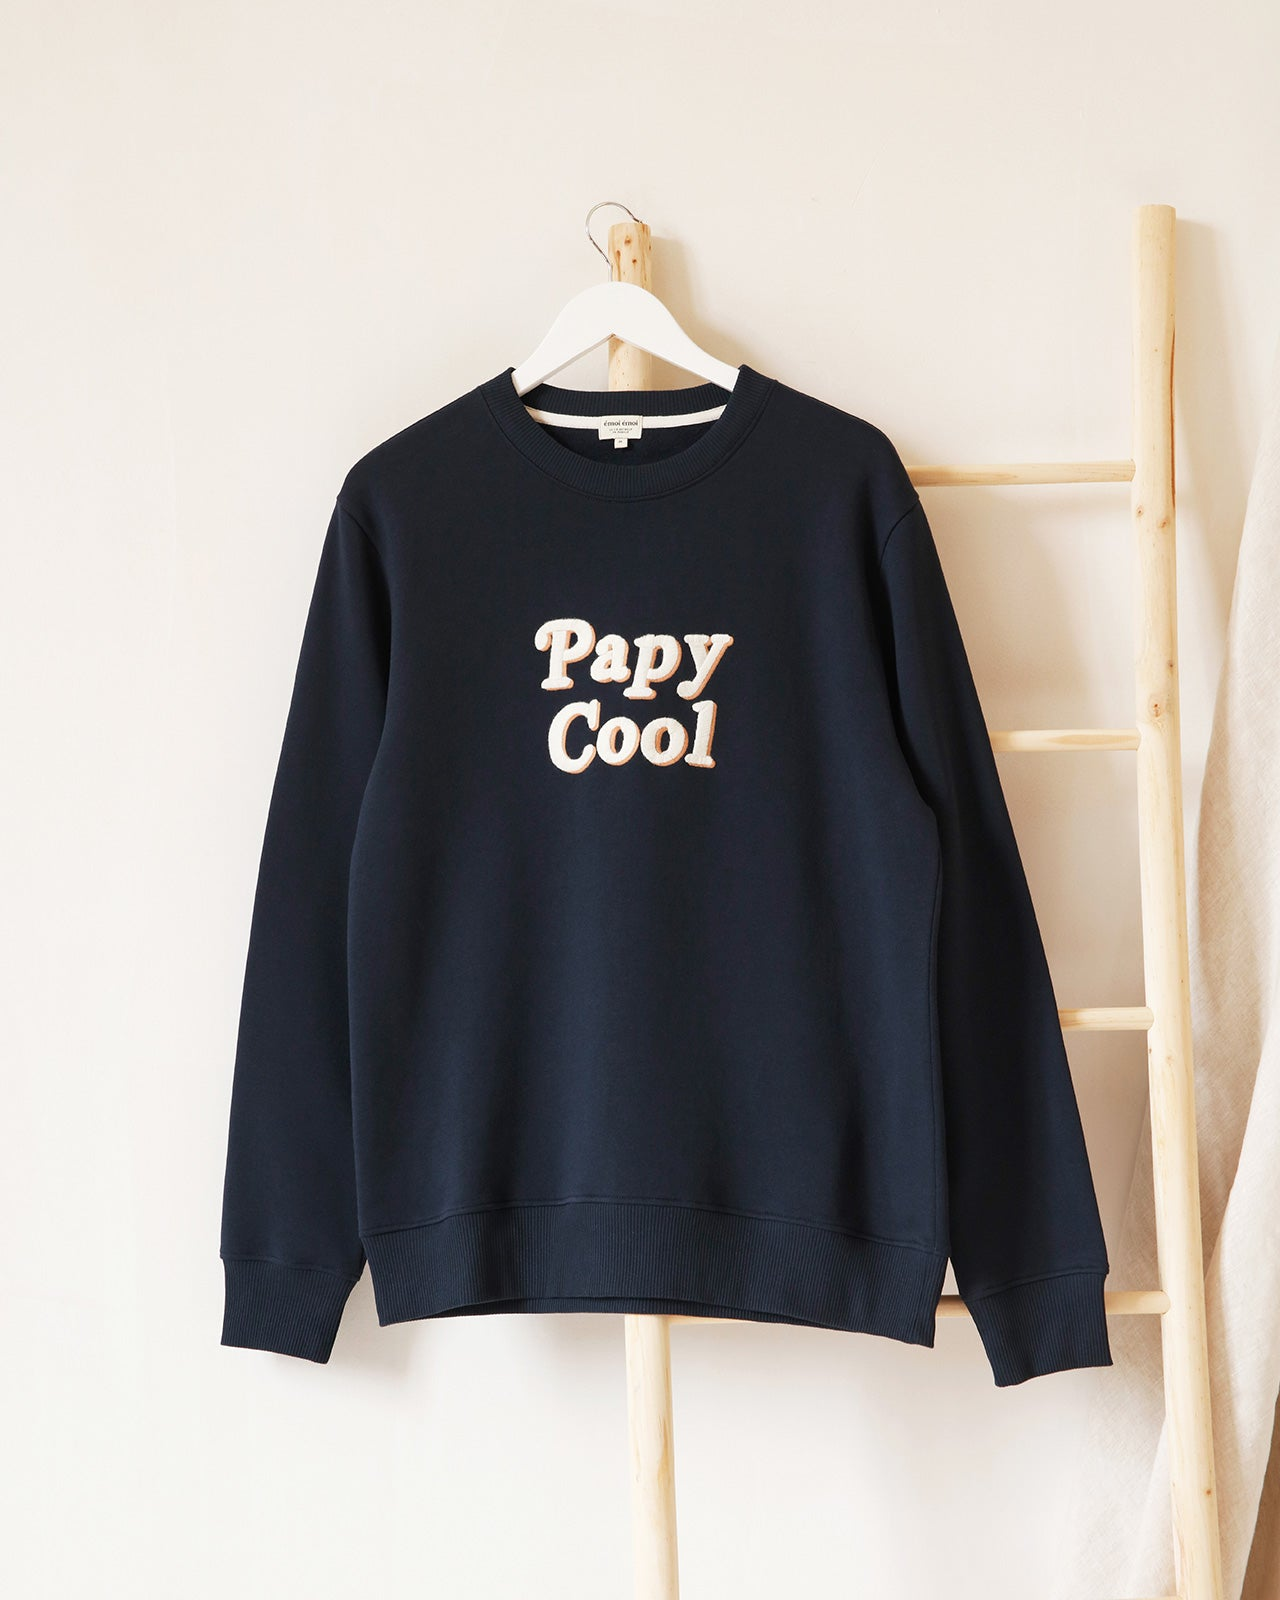 Le duo de sweats Papy cool / Mamie cool - charbon